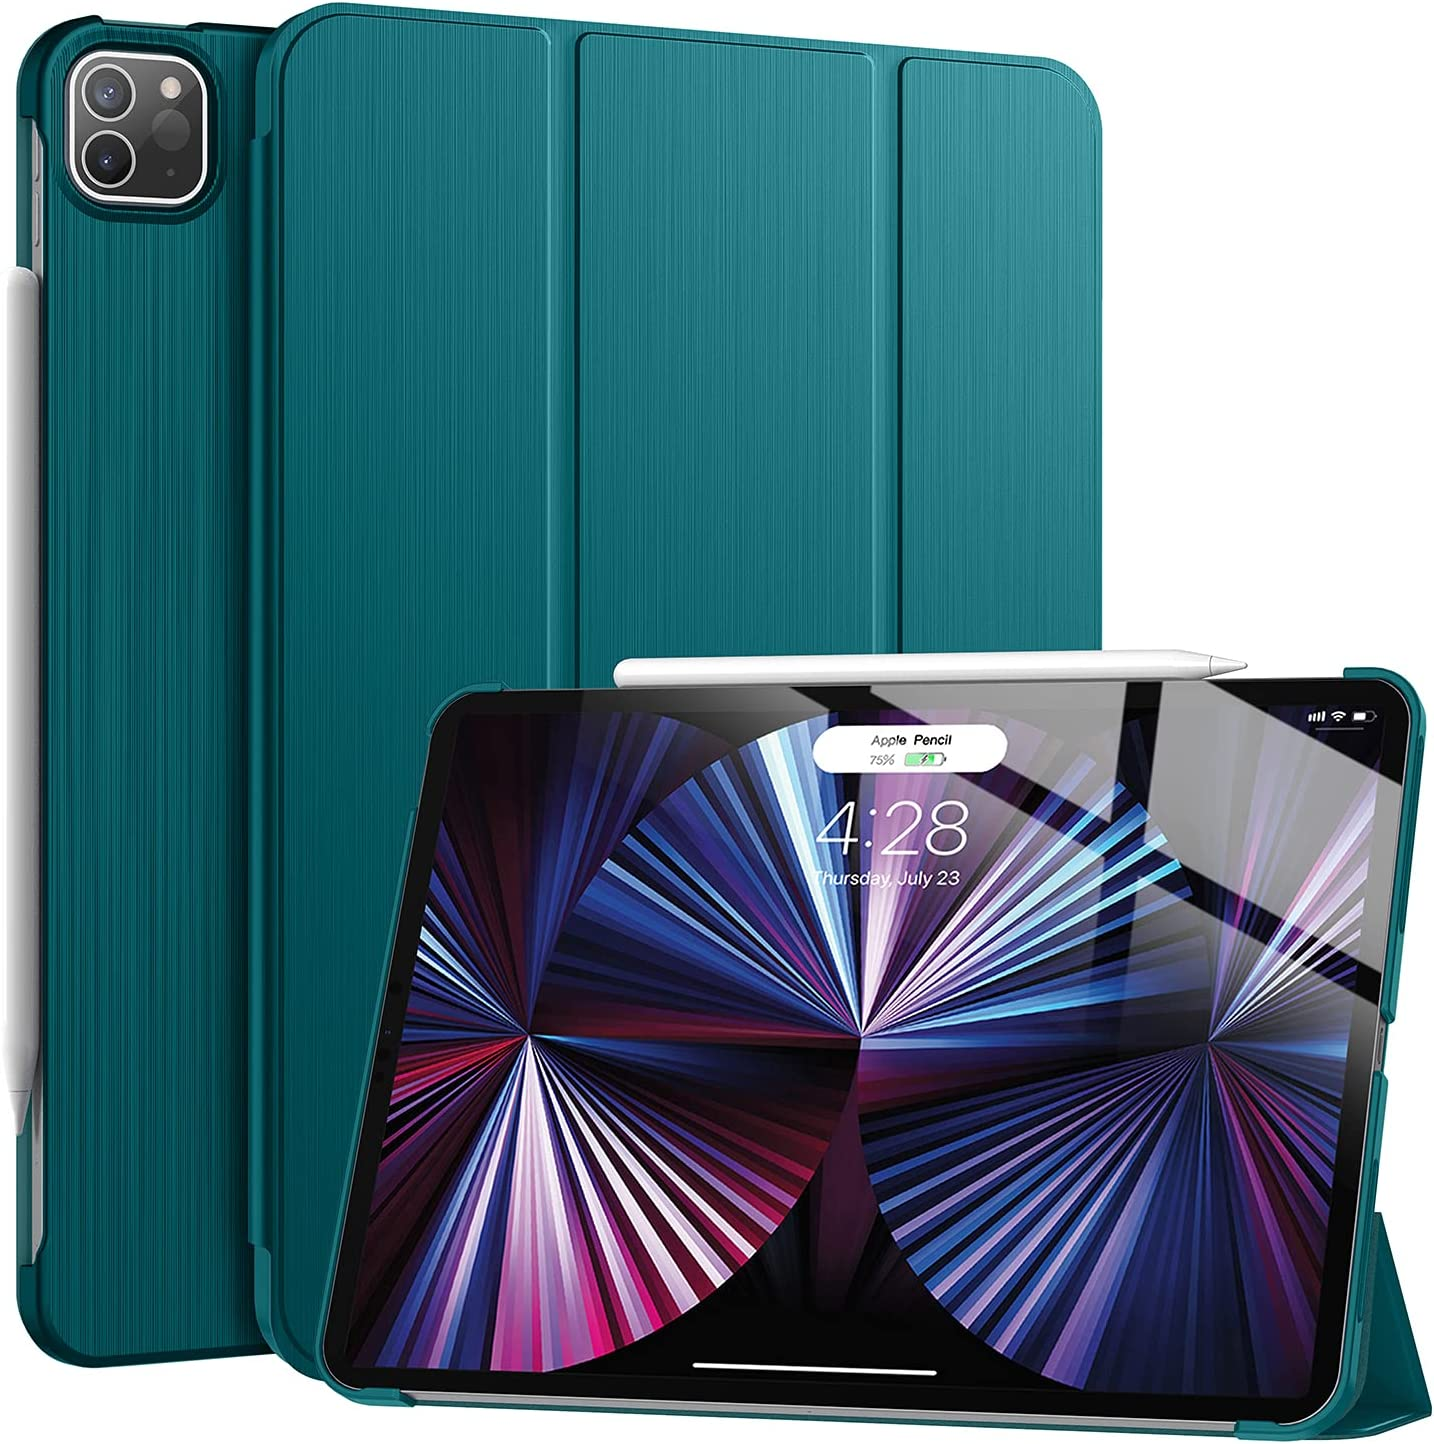 Soke New iPad Pro 11 Case 2021(3rd Generation) - [Slim Trifold Stand + 2nd Gen Apple Pencil Charging + Smart Auto Wake/Sleep],Premium Protective Hard PC Back Cover for iPad Pro 11 inch(Teal)